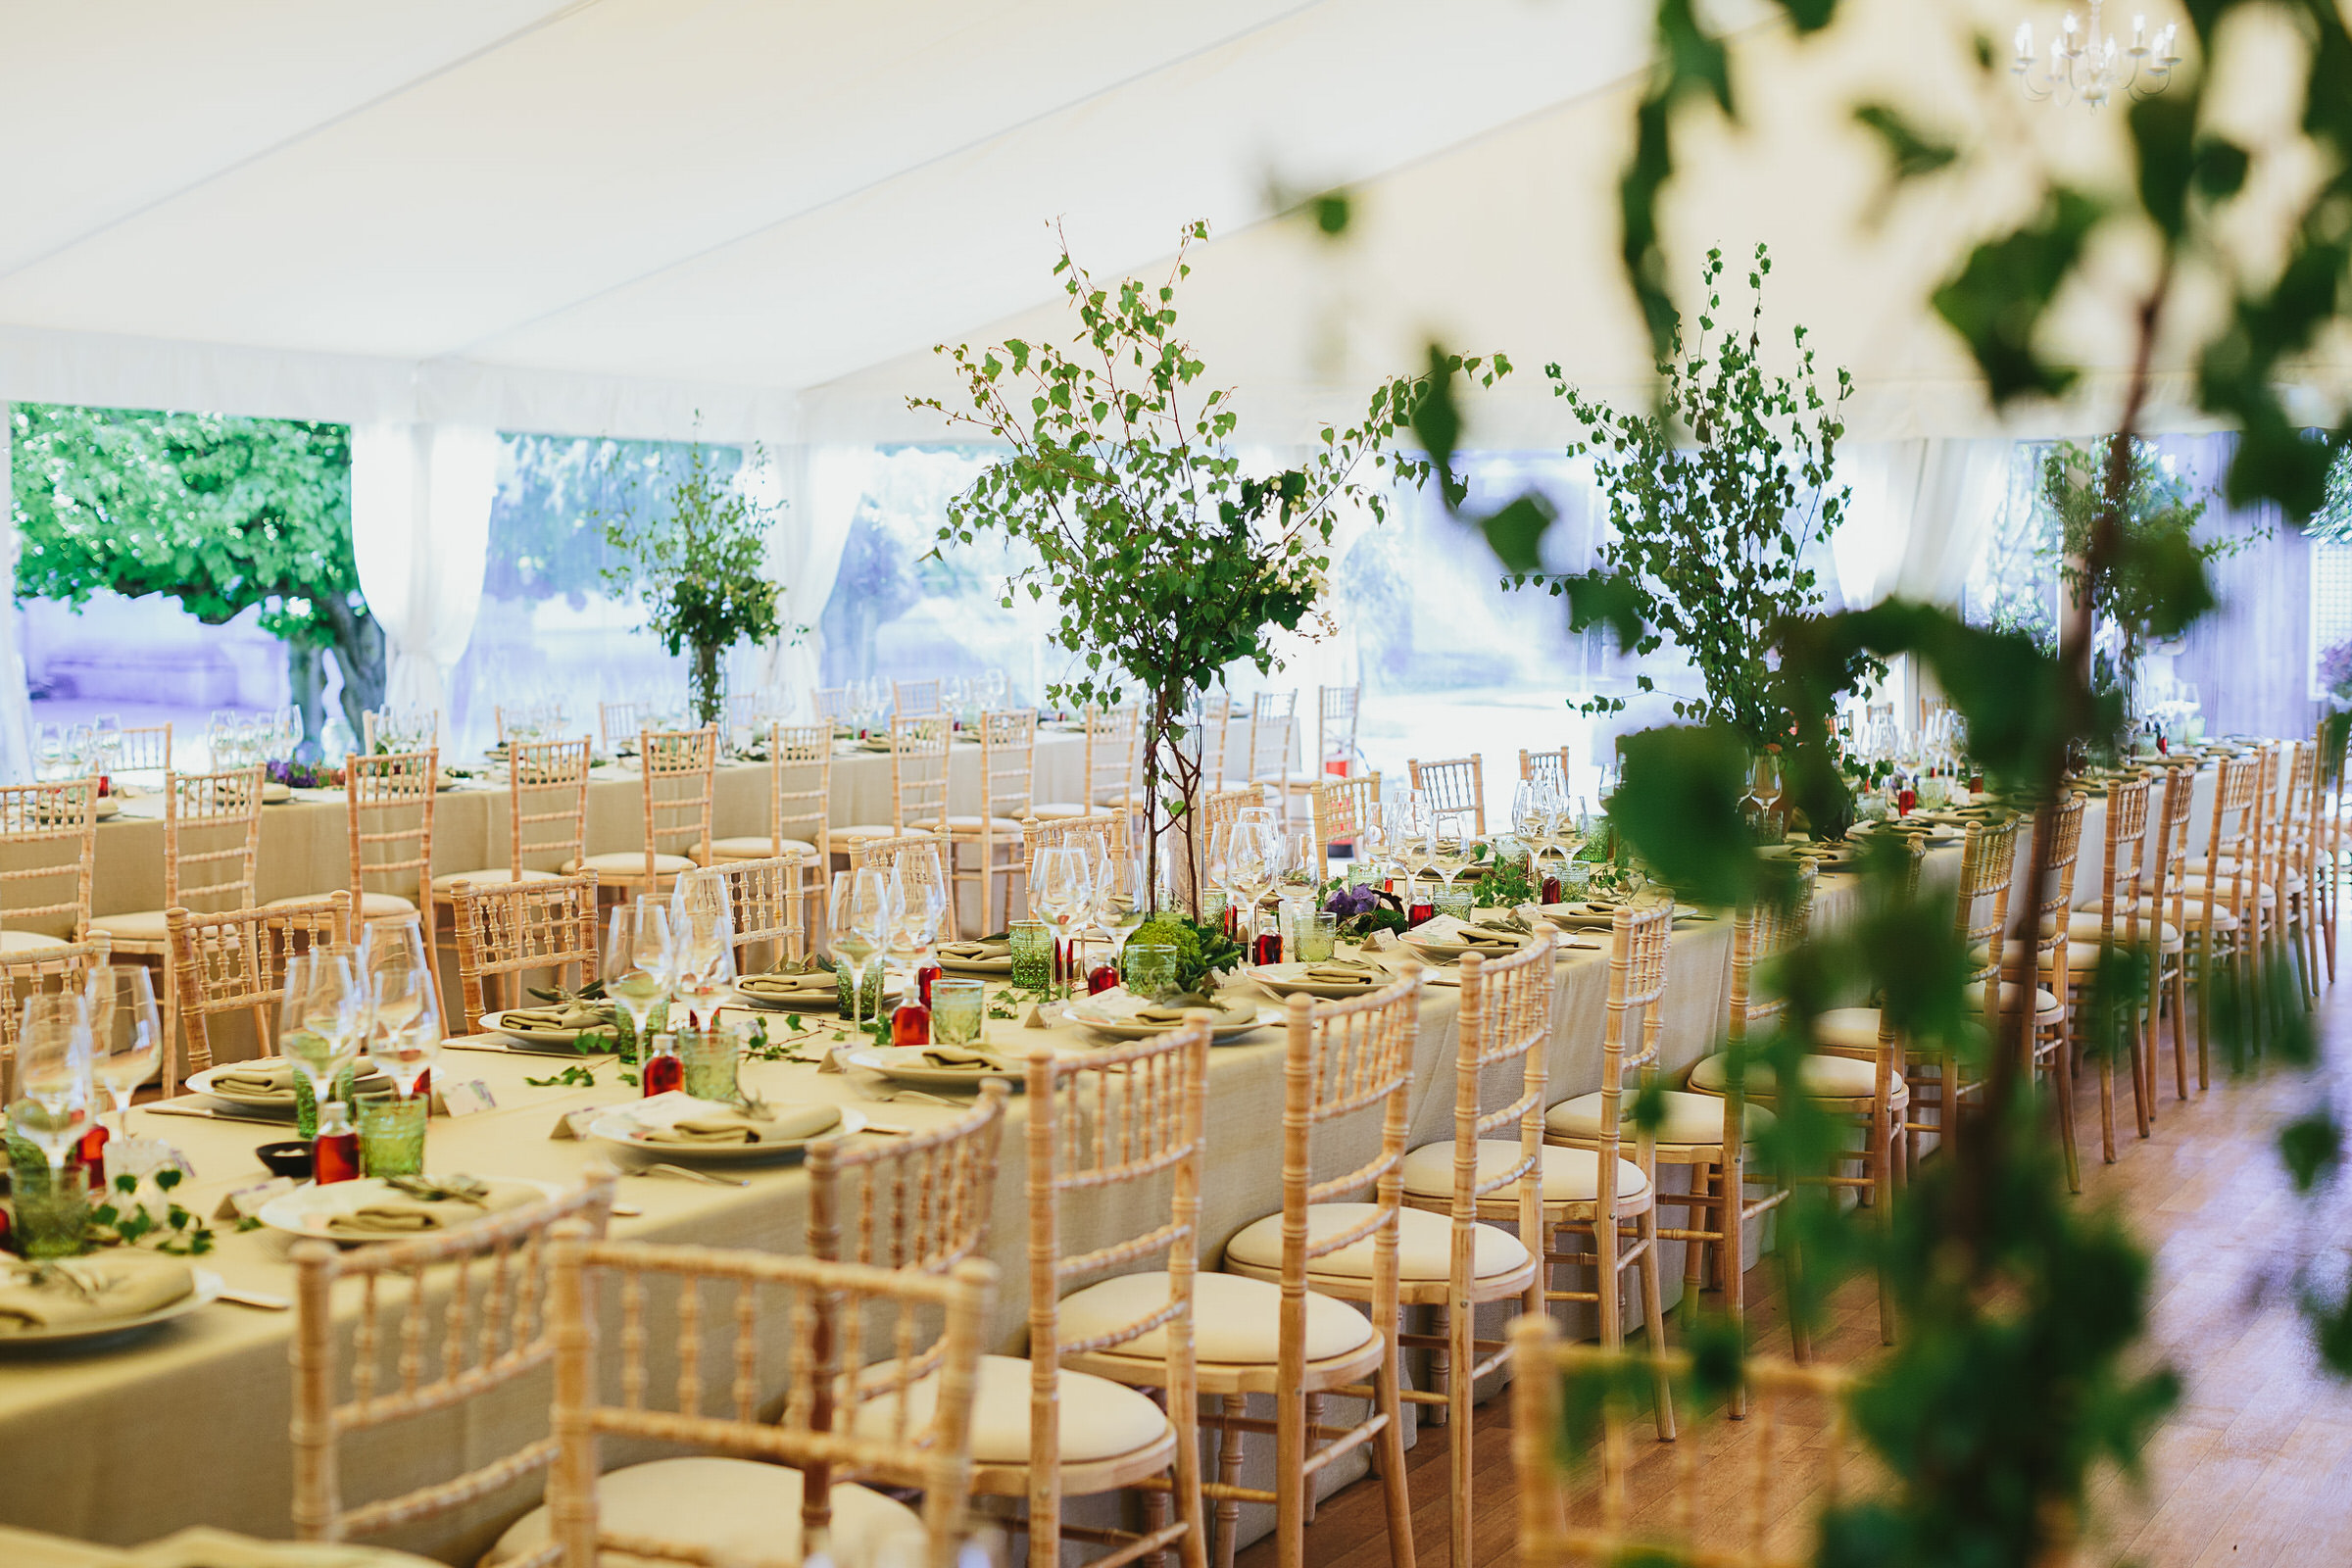 Chiswick House marquee